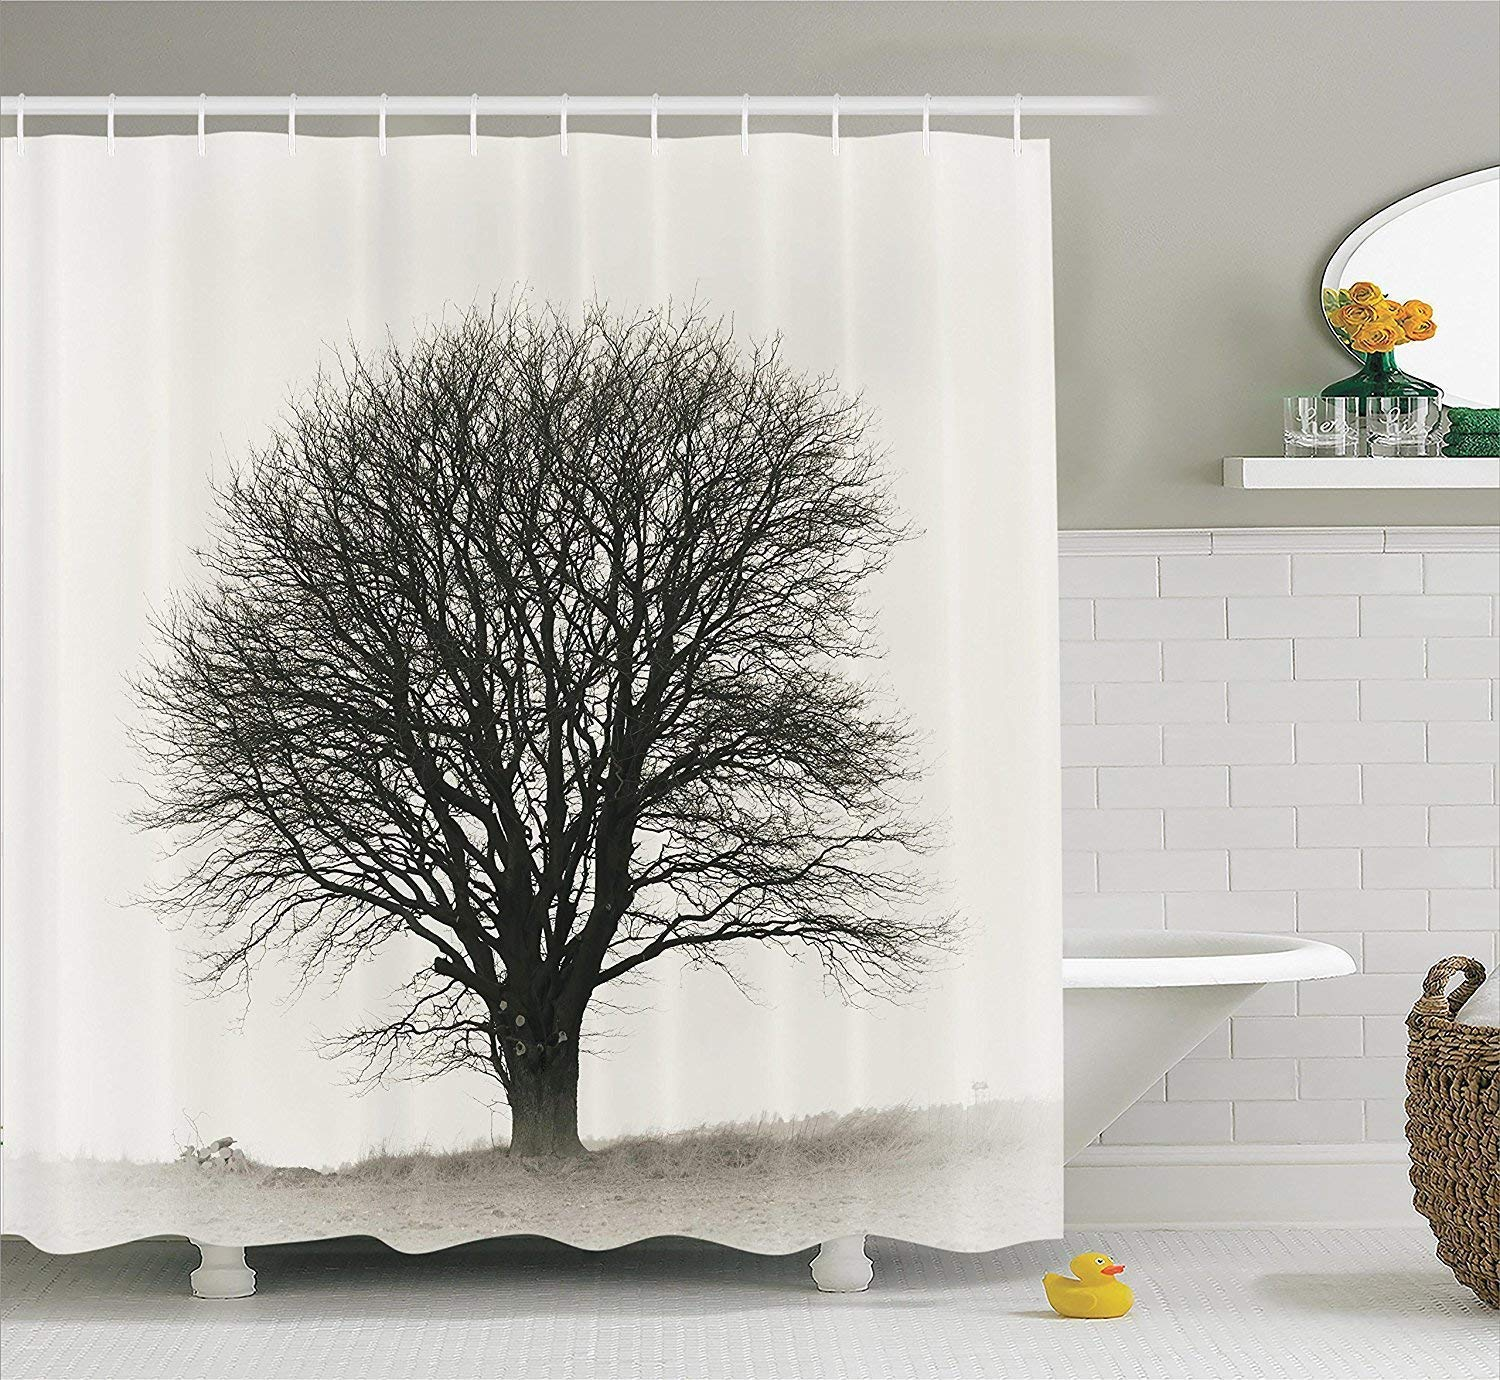 Diversión sexy werert werert sexy Farm House Decor Shower Curtain Set, Photo of A Big Tree On A Field Branches Fall Season Monochromic Landscape Artwork,Beige Black 72 X 72 a7c033